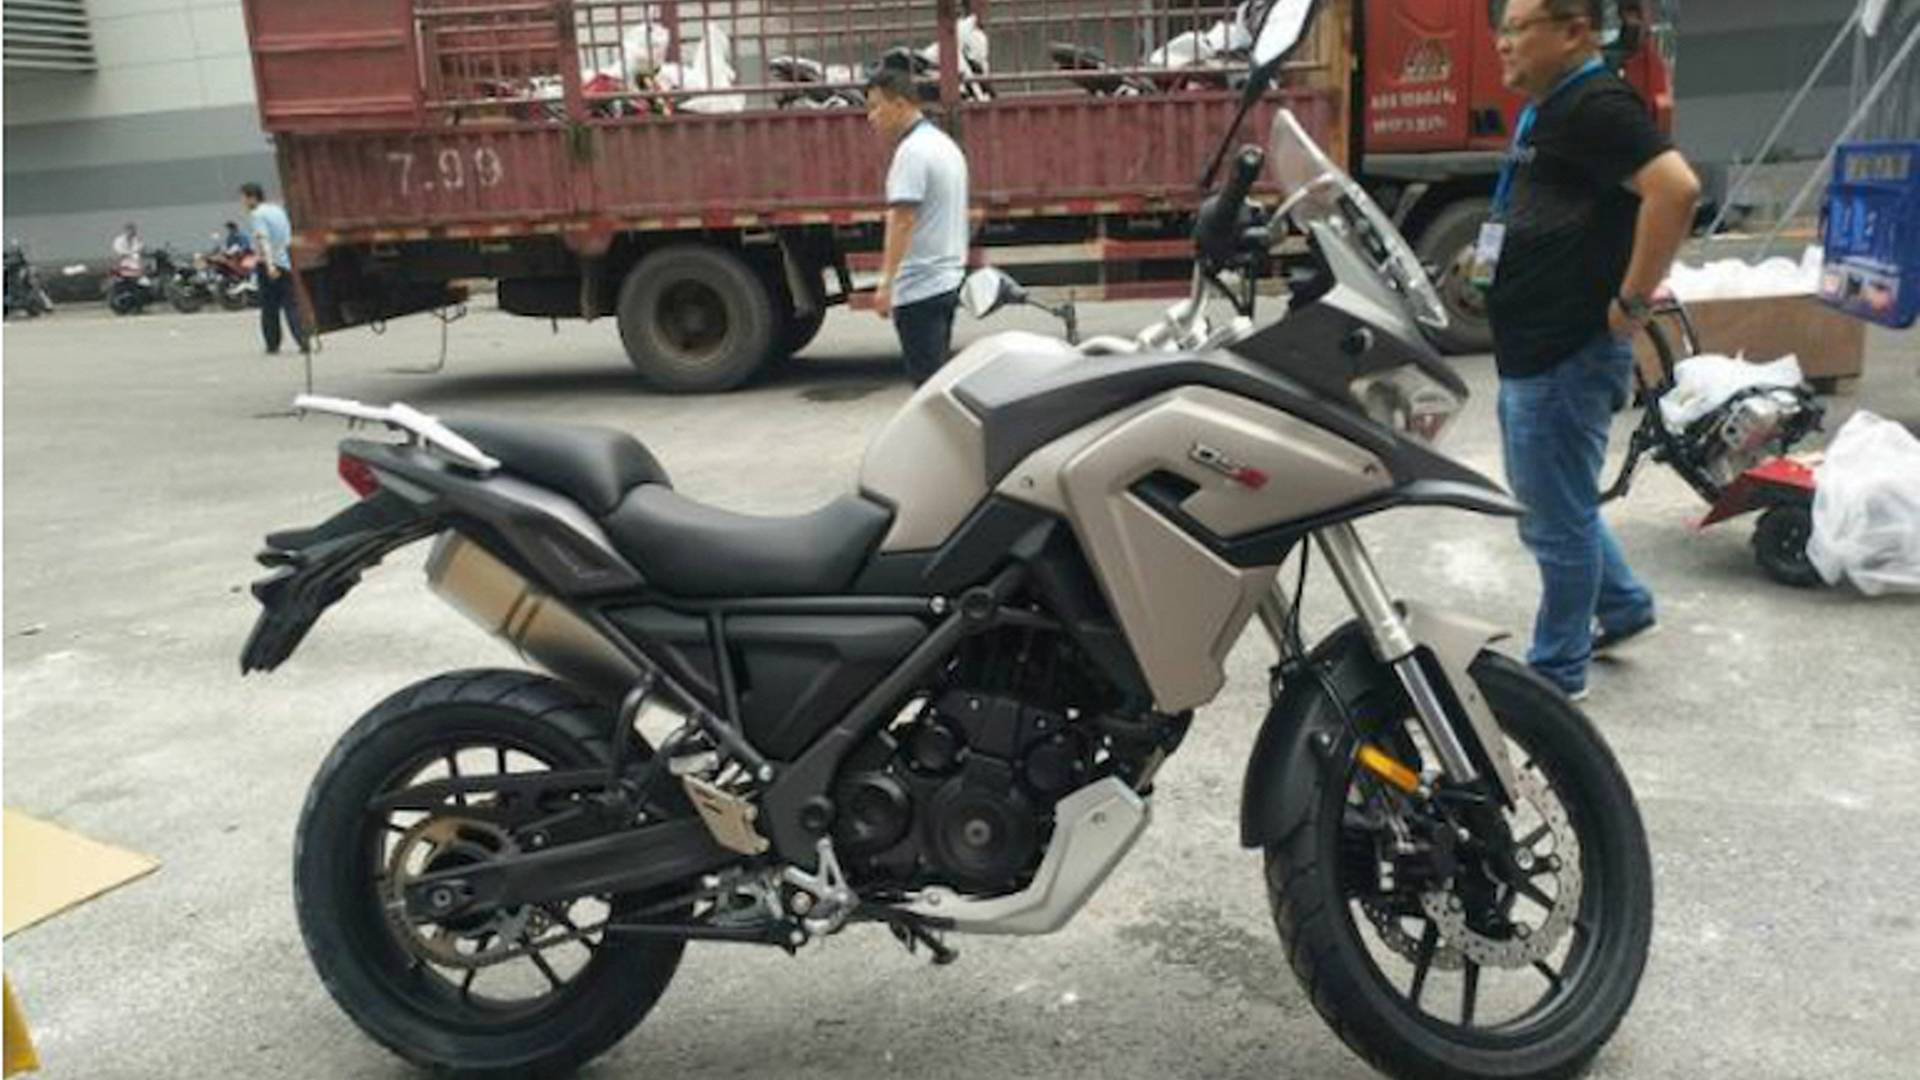 Chinese Motorcycle Builder Loncin Unveils New ADV Bike